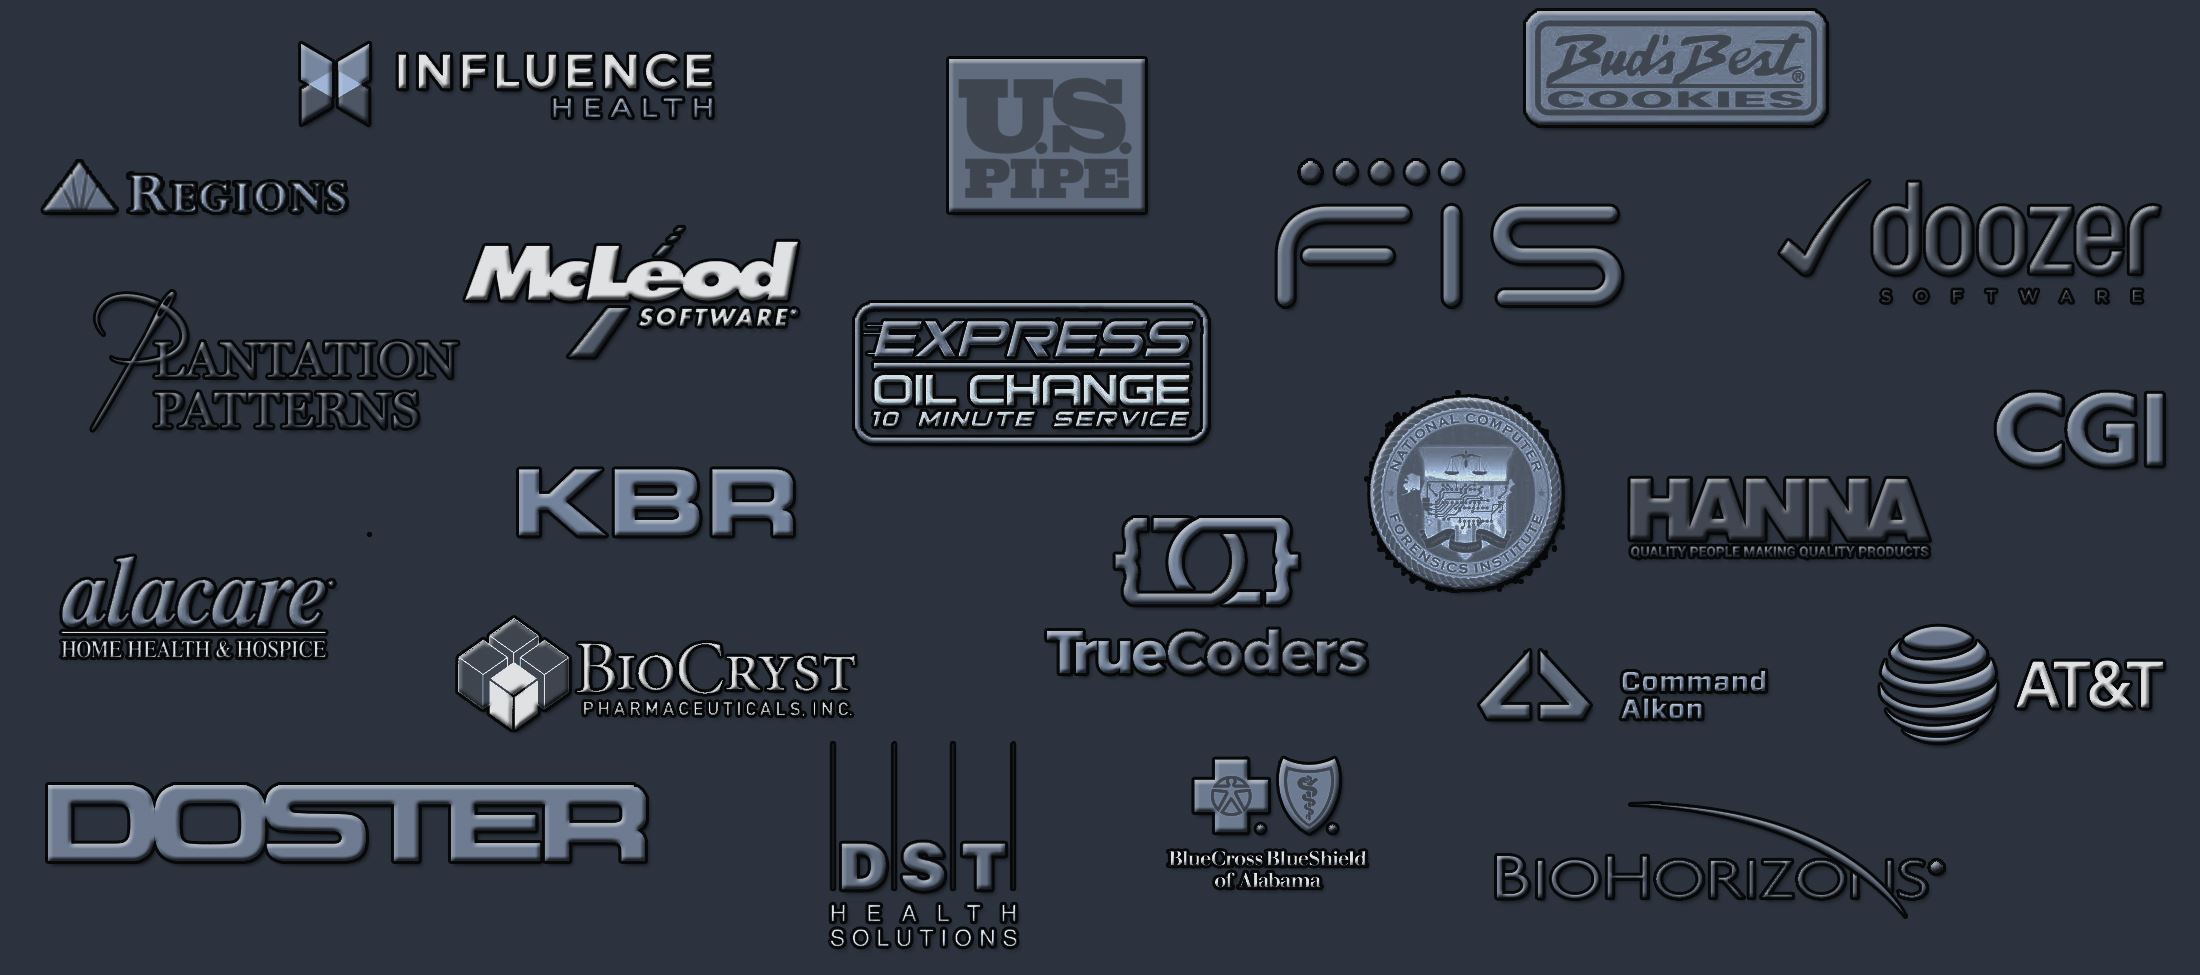 Hoover Corporate Logos